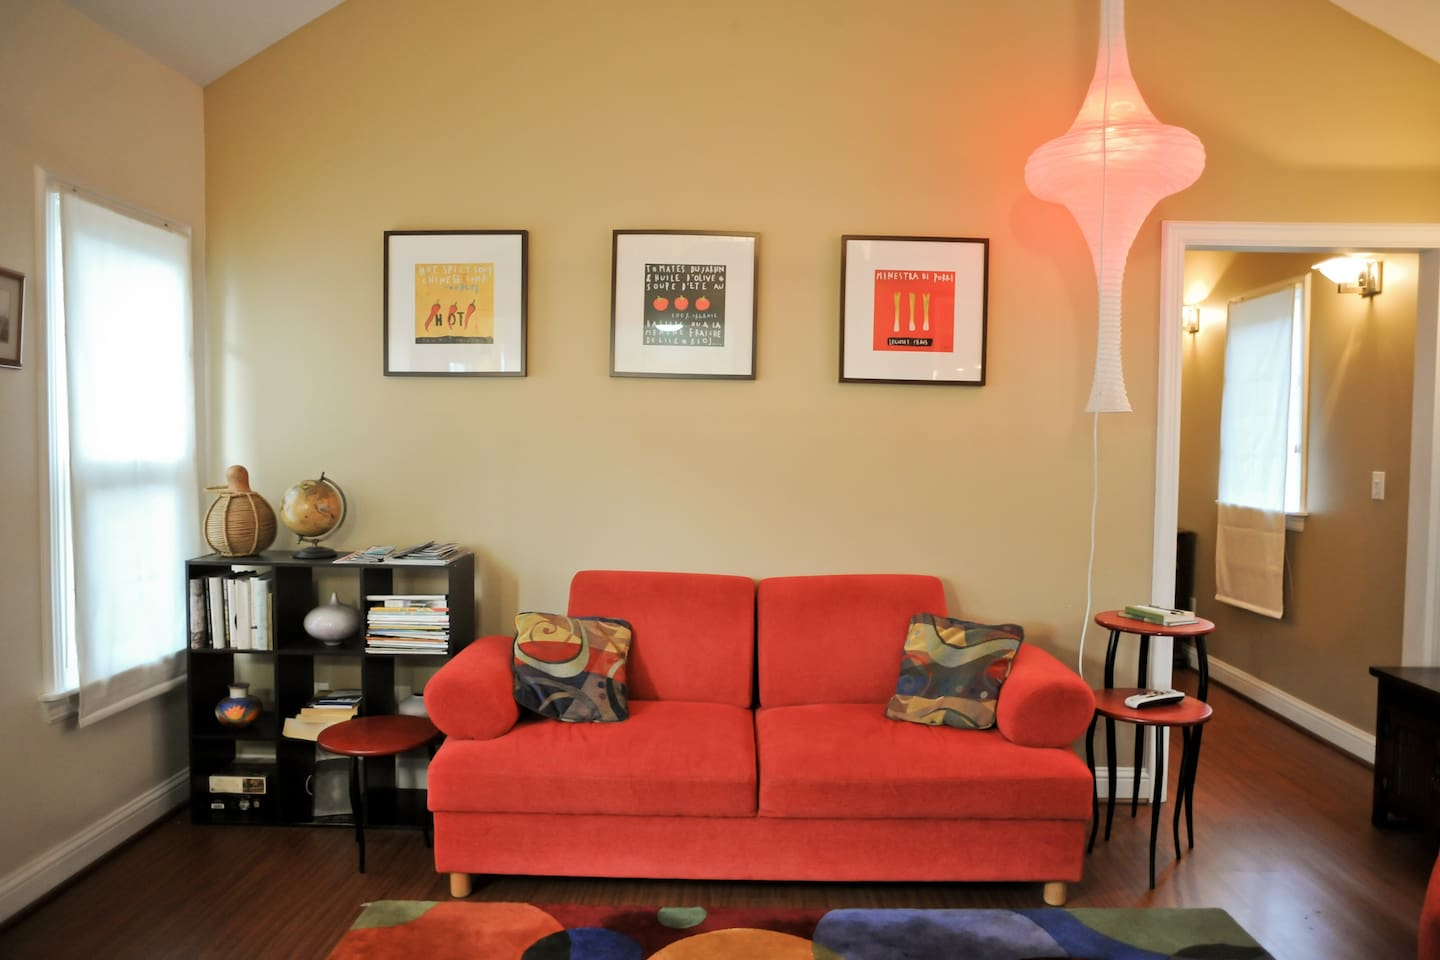 The modern and brightly lit living room with comfortable couch